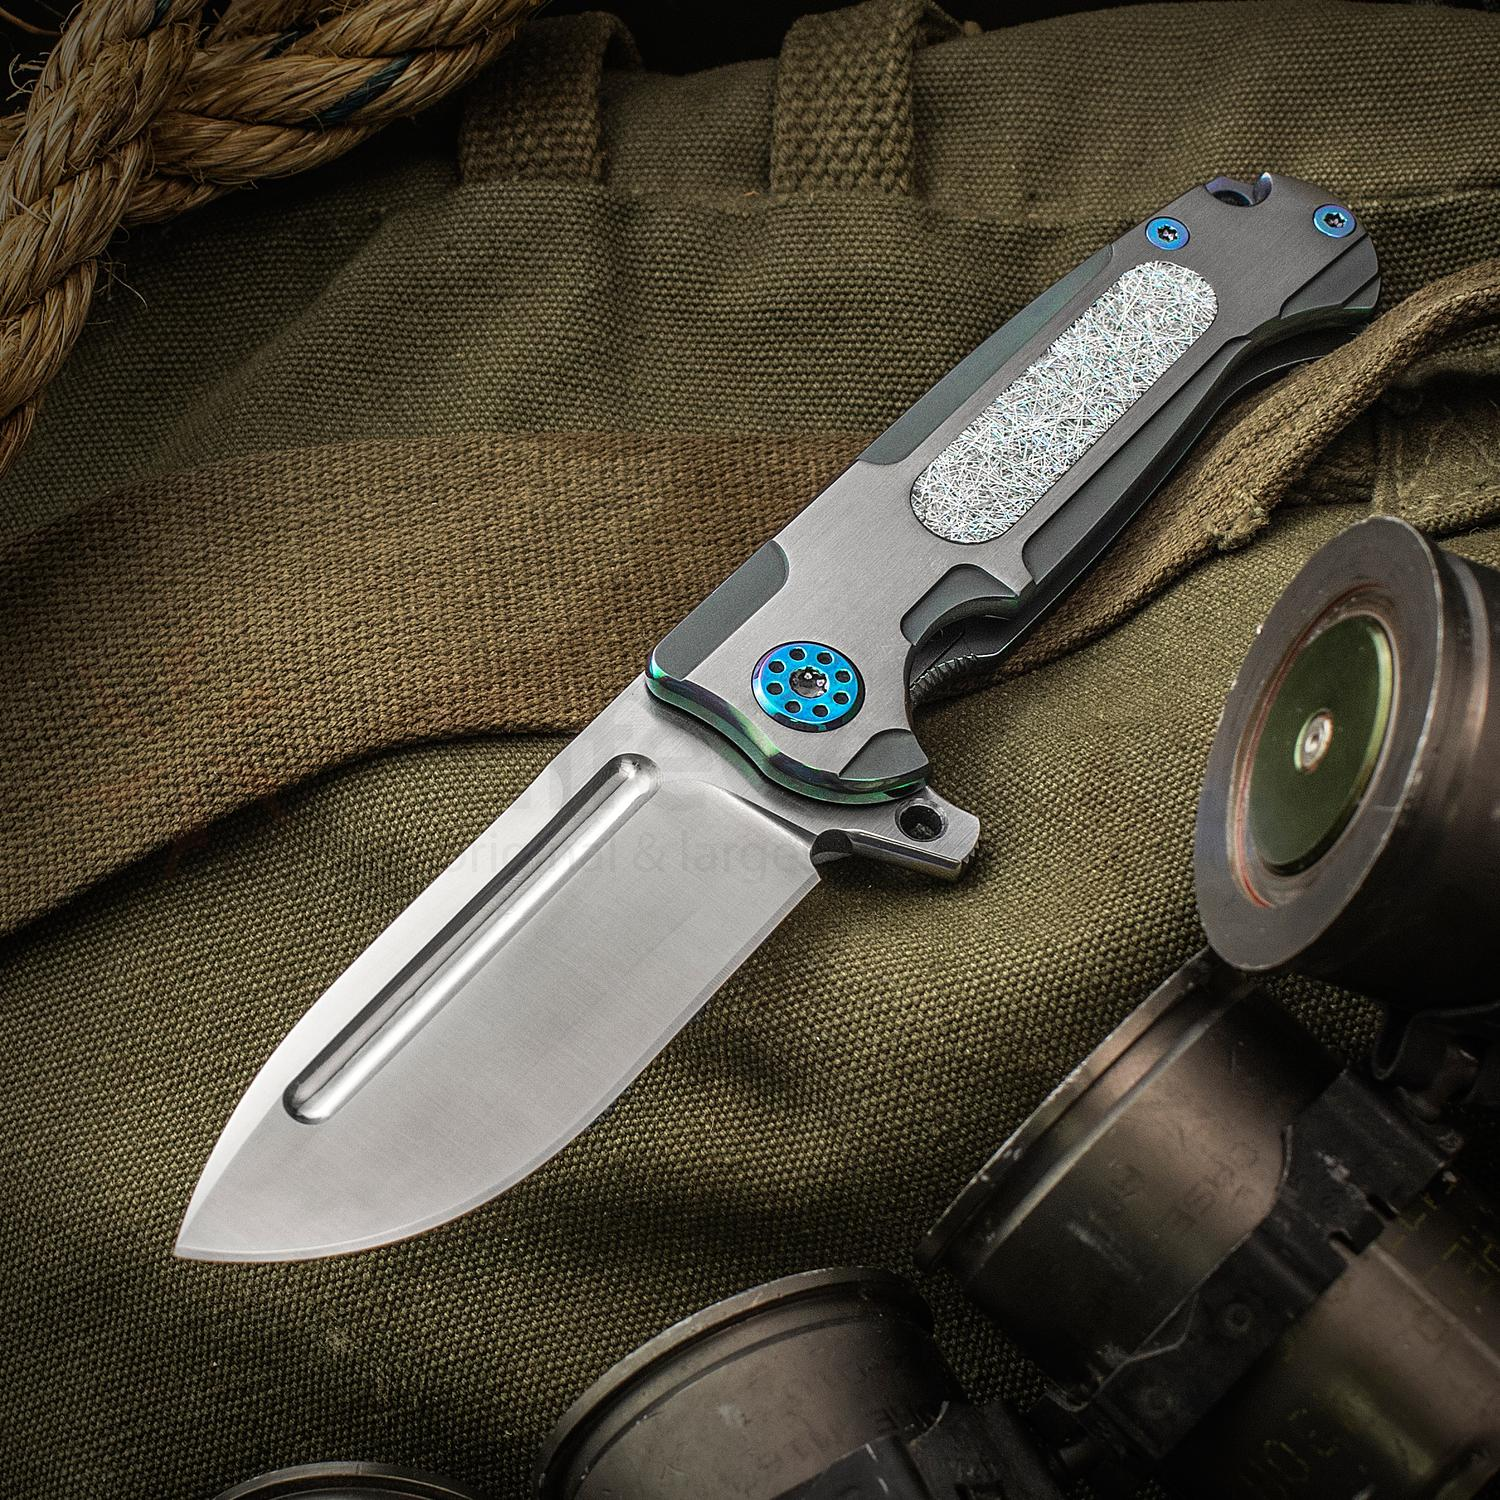 Andre De Villiers Knives Customized Mini Pathfinder Flipper 3.25 inch S35VN Satin Drop Point Blade, Titanium Handles with Holographic Carbon Fiber Inlay